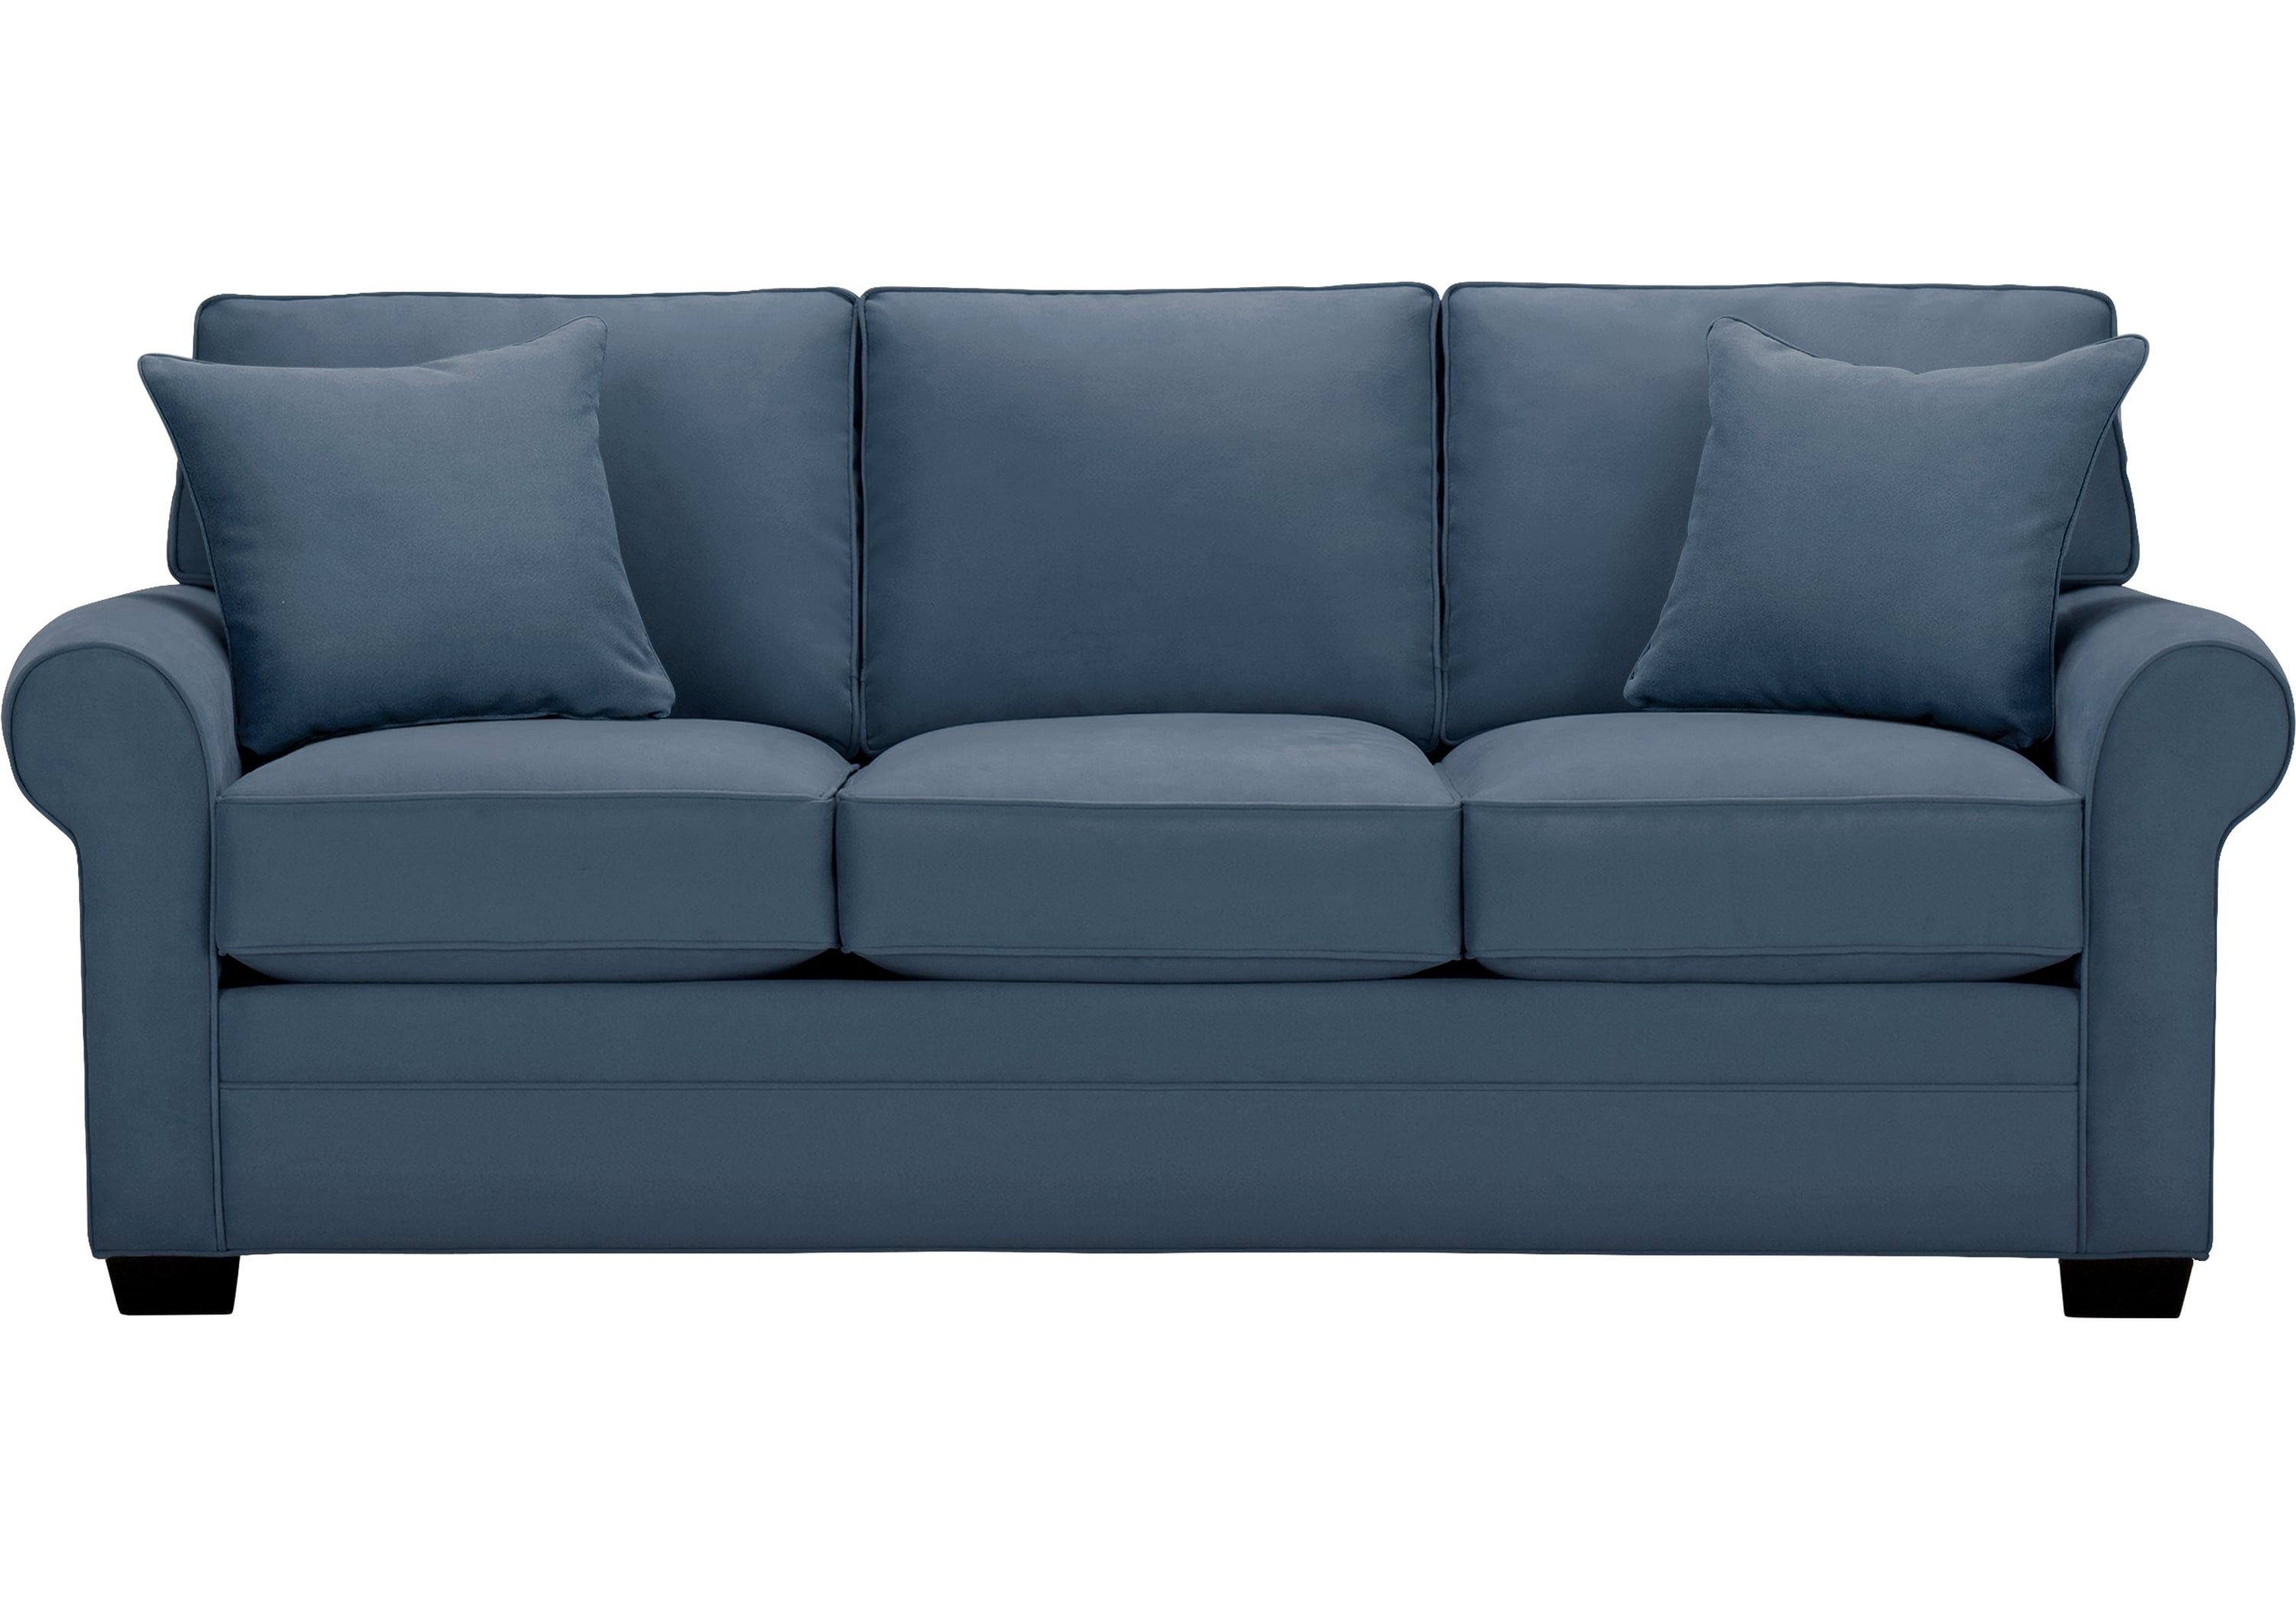 Cindy Crawford Home Bellingham Indigo Sleeper Cheap Living Room Sets Living Room Sets Furniture Living Room Decor Brown Couch Rooms to go isofa